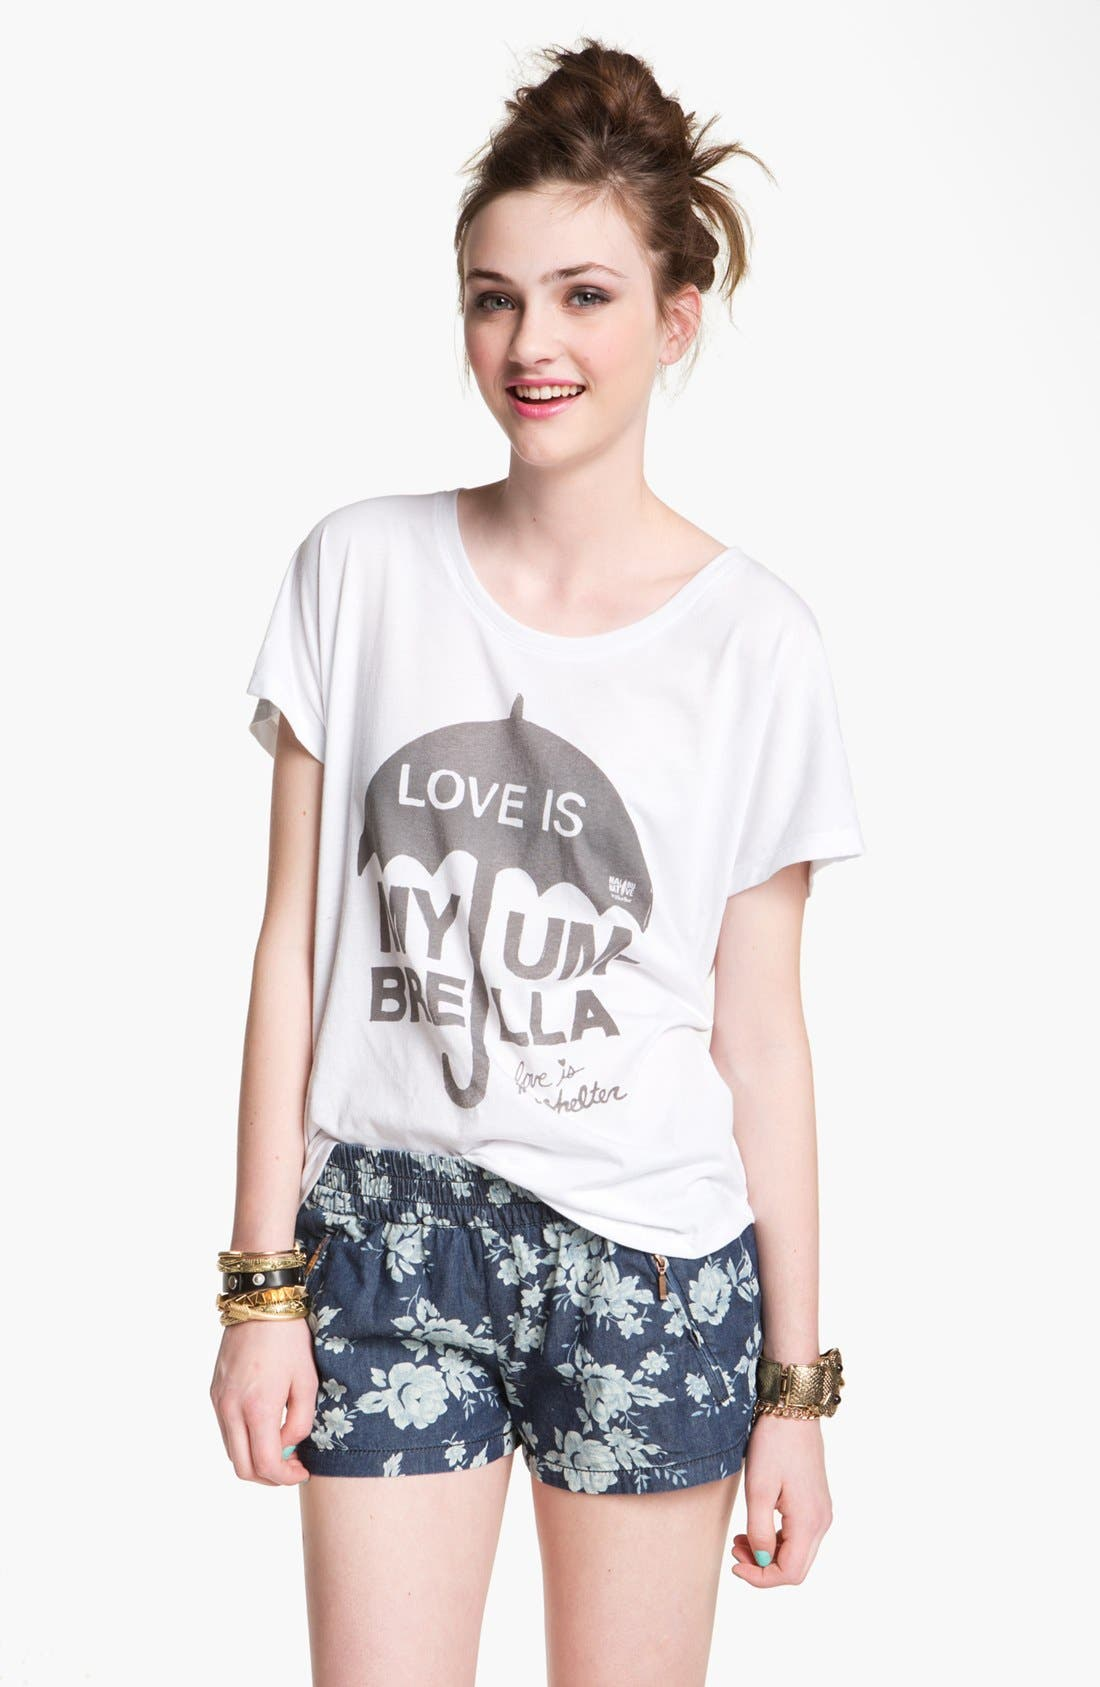 Alternate Image 1 Selected - Malibu Native 'Love Is My Umbrella' Tee (Juniors)